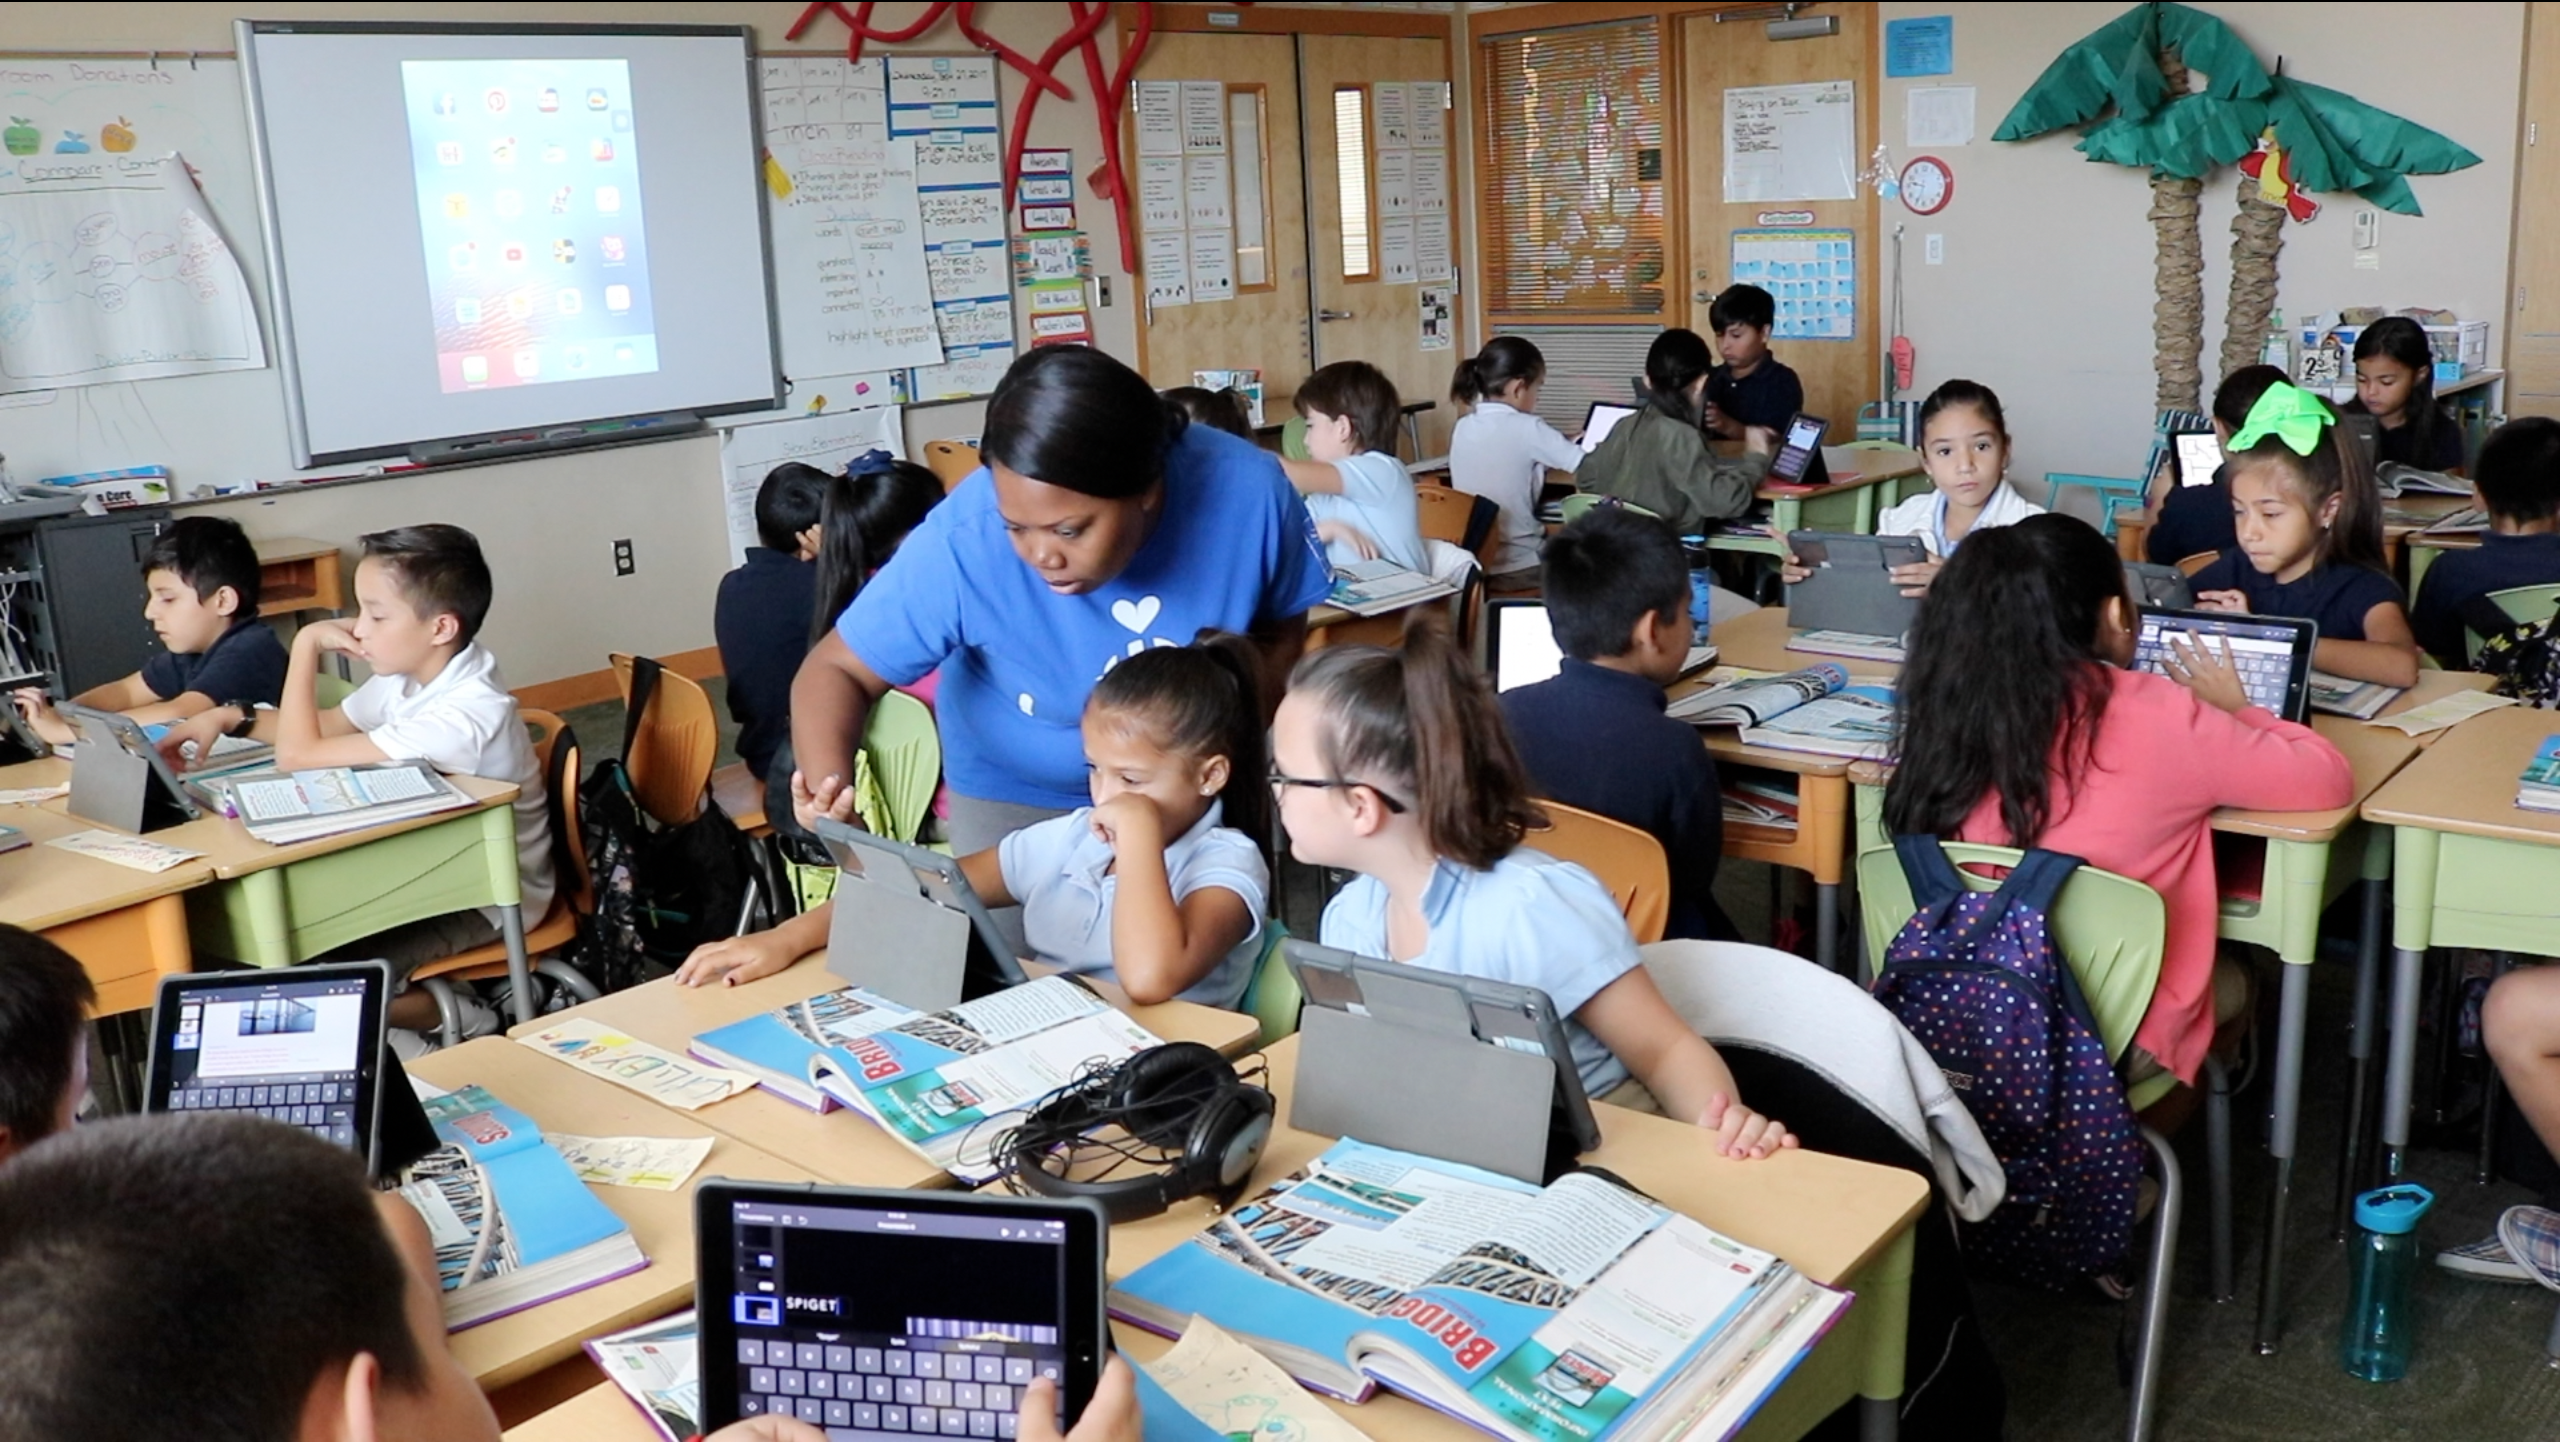 Technology In Elementary Classrooms : Technology in the classroom increases creativity and decreases